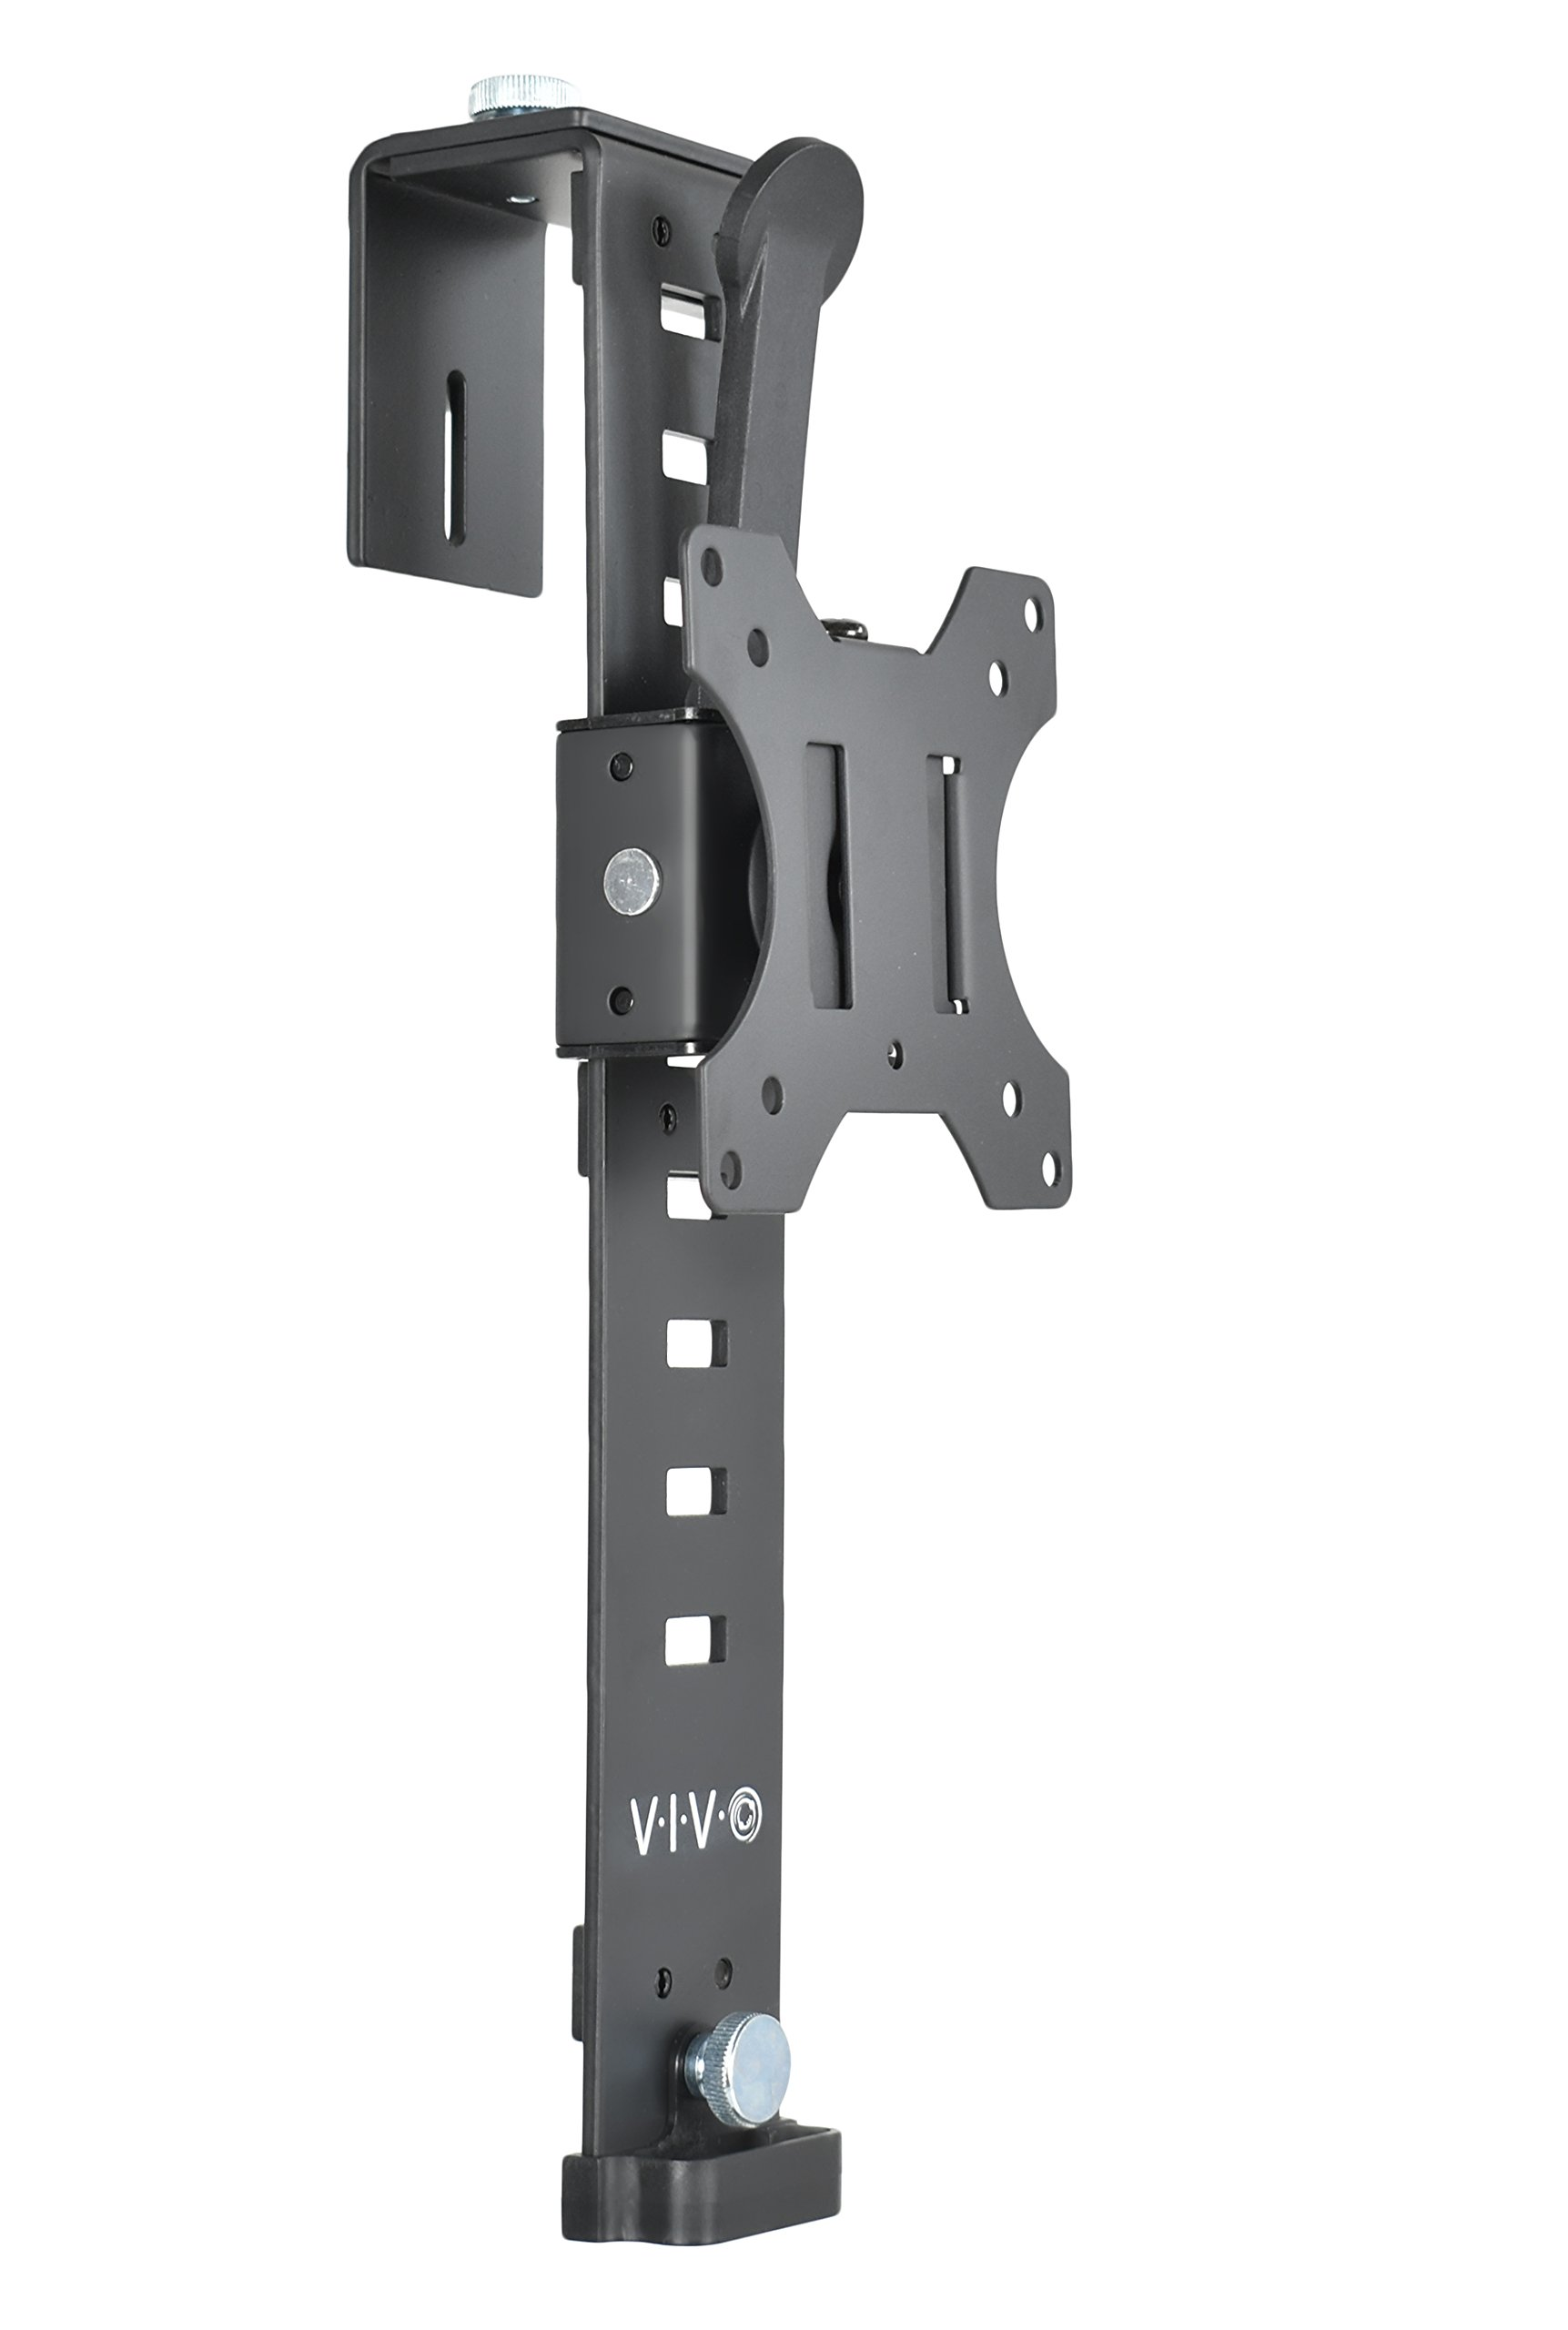 VIVO Black Office Cubicle Bracket VESA Monitor Mount Stand Hanger Attachment Adjustable Clamp for 17'' to 32'' Screen (MOUNT-CUB1)